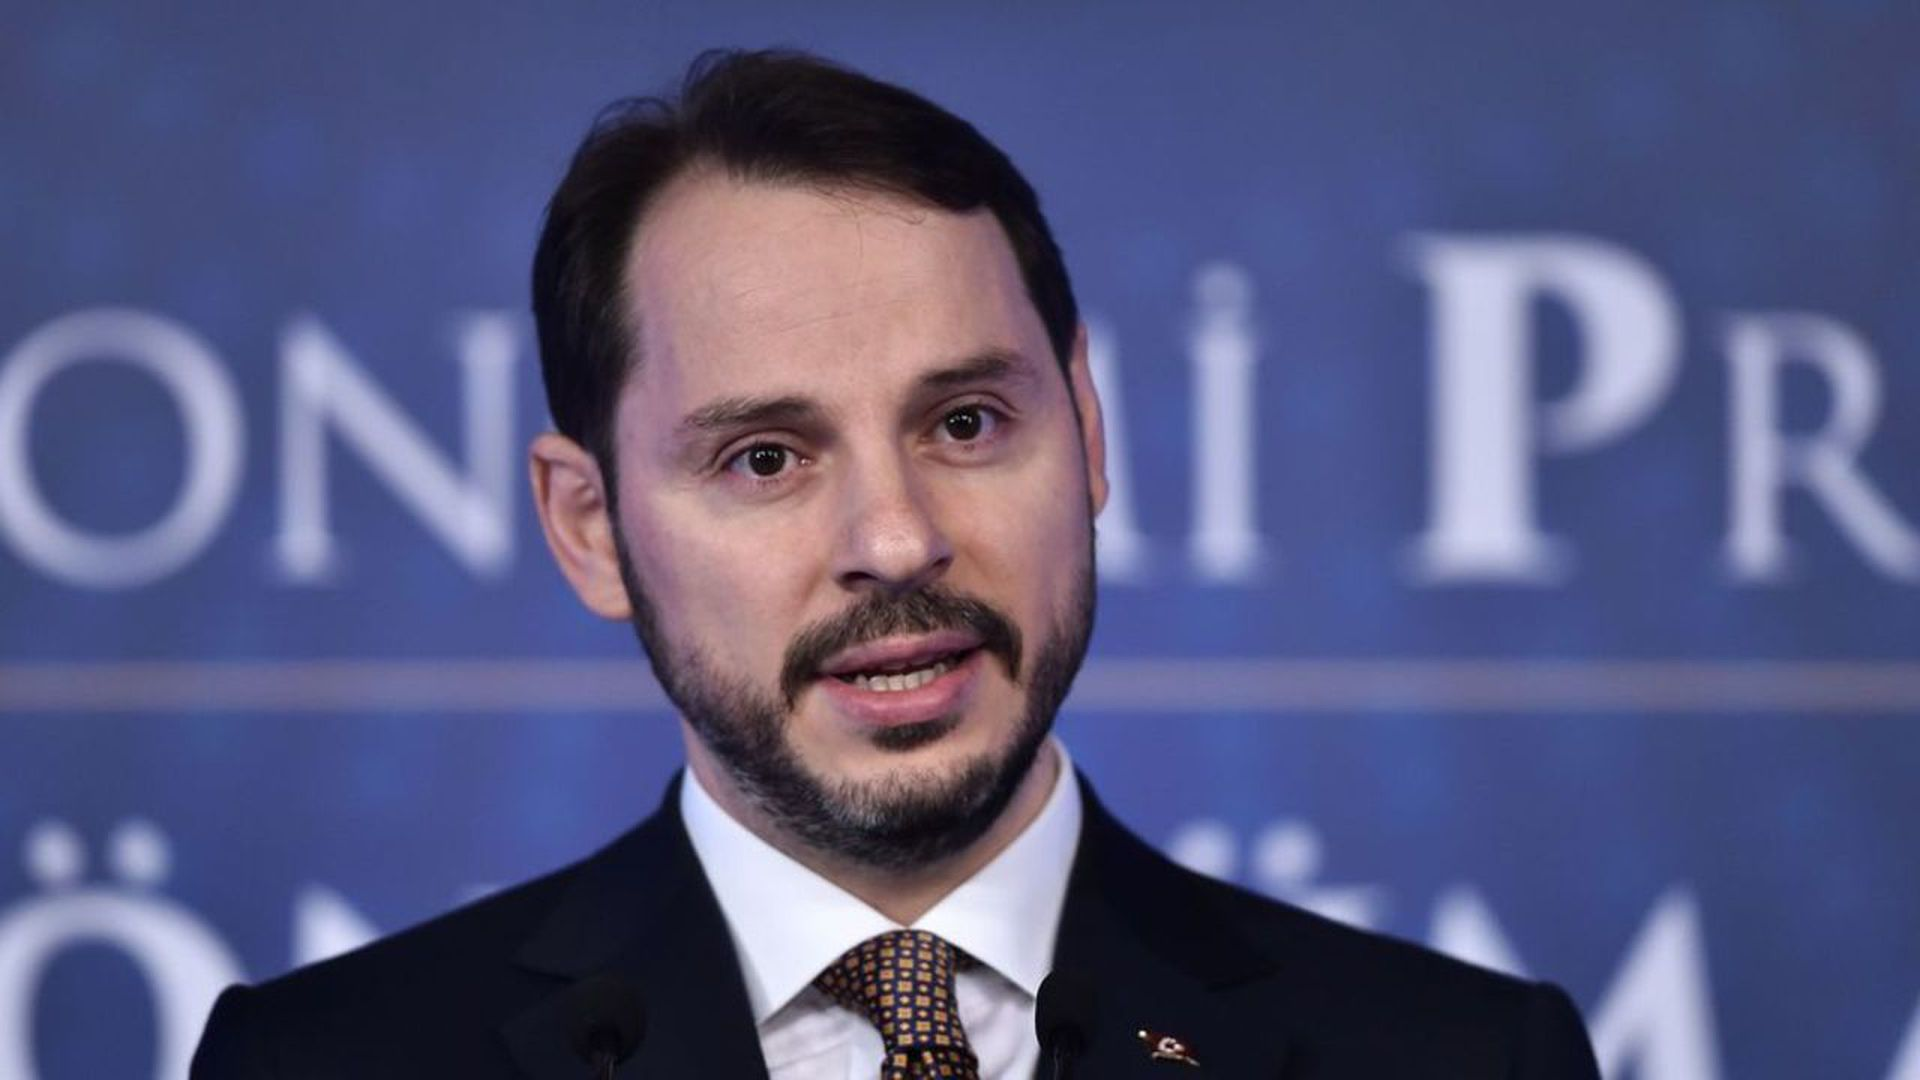 Berat Albayrak. Photo: Ozan Kose/AFP/Getty Images